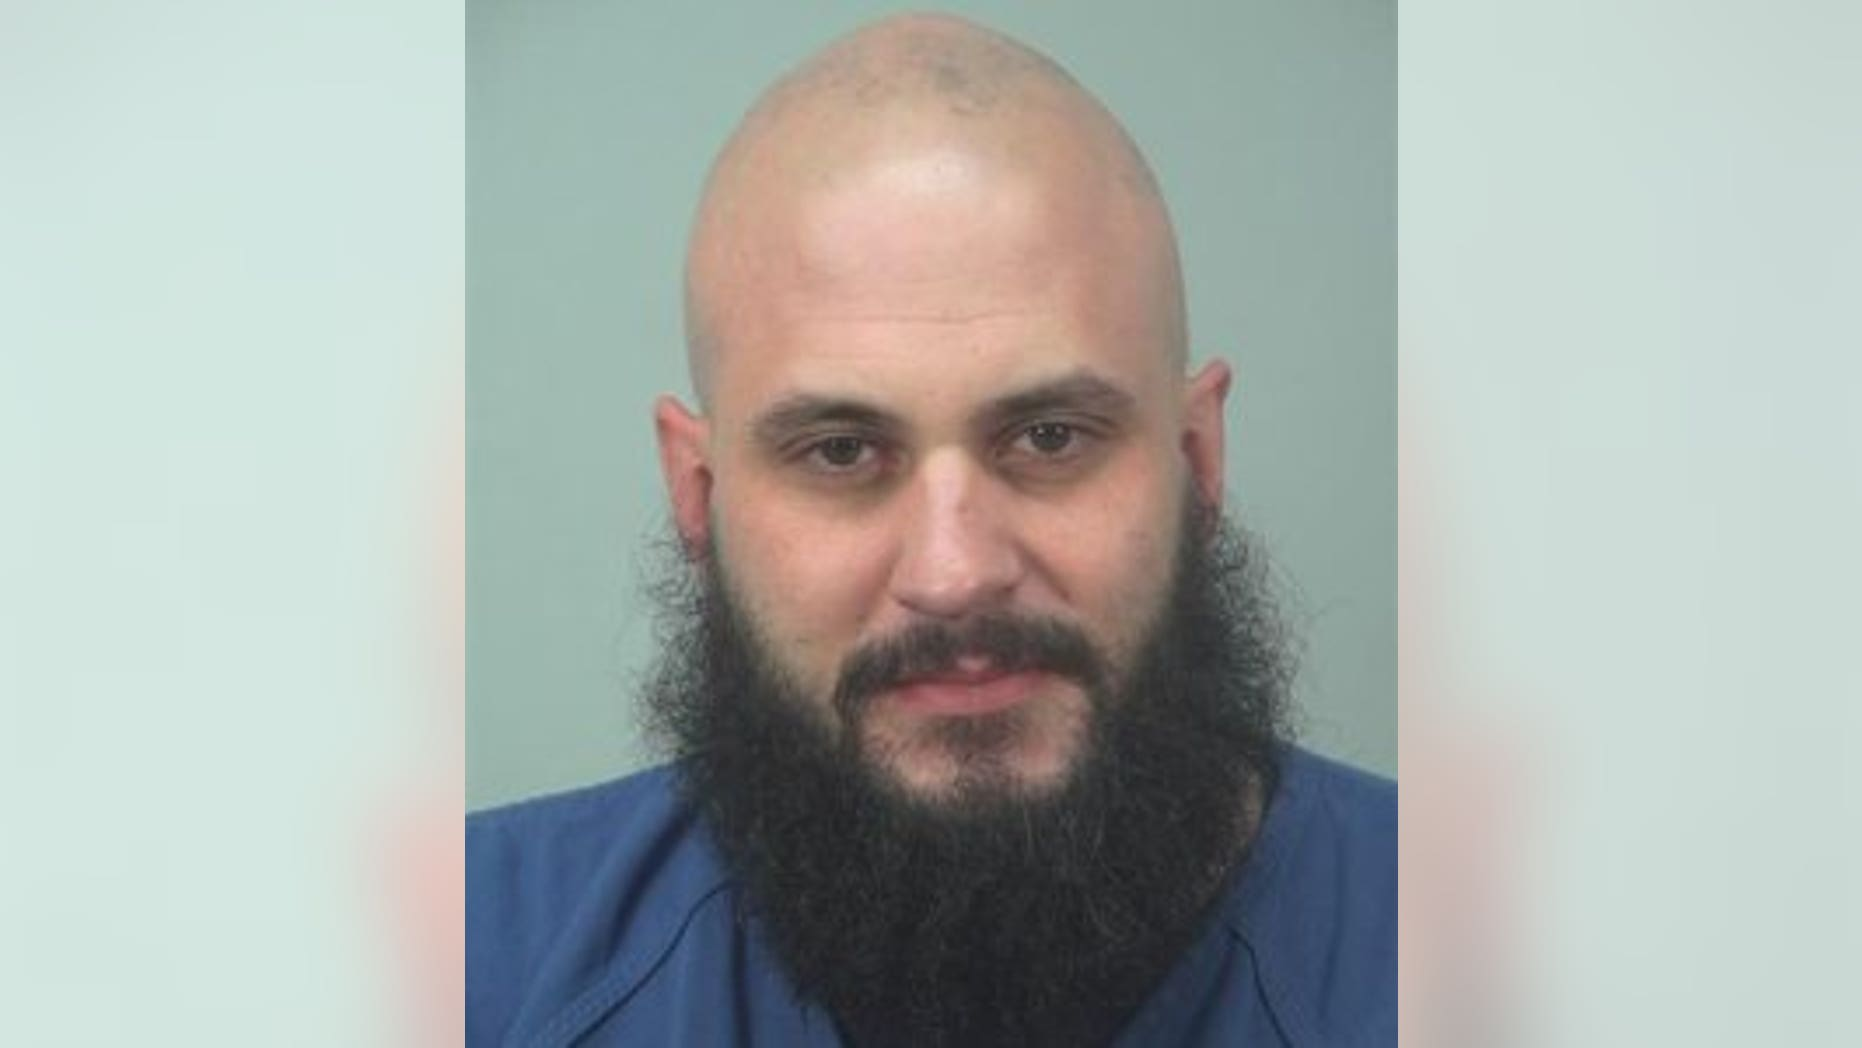 Jeremy Ryan, 30,attempted to acquire radioactive material as part of a murder plot, authorities say.